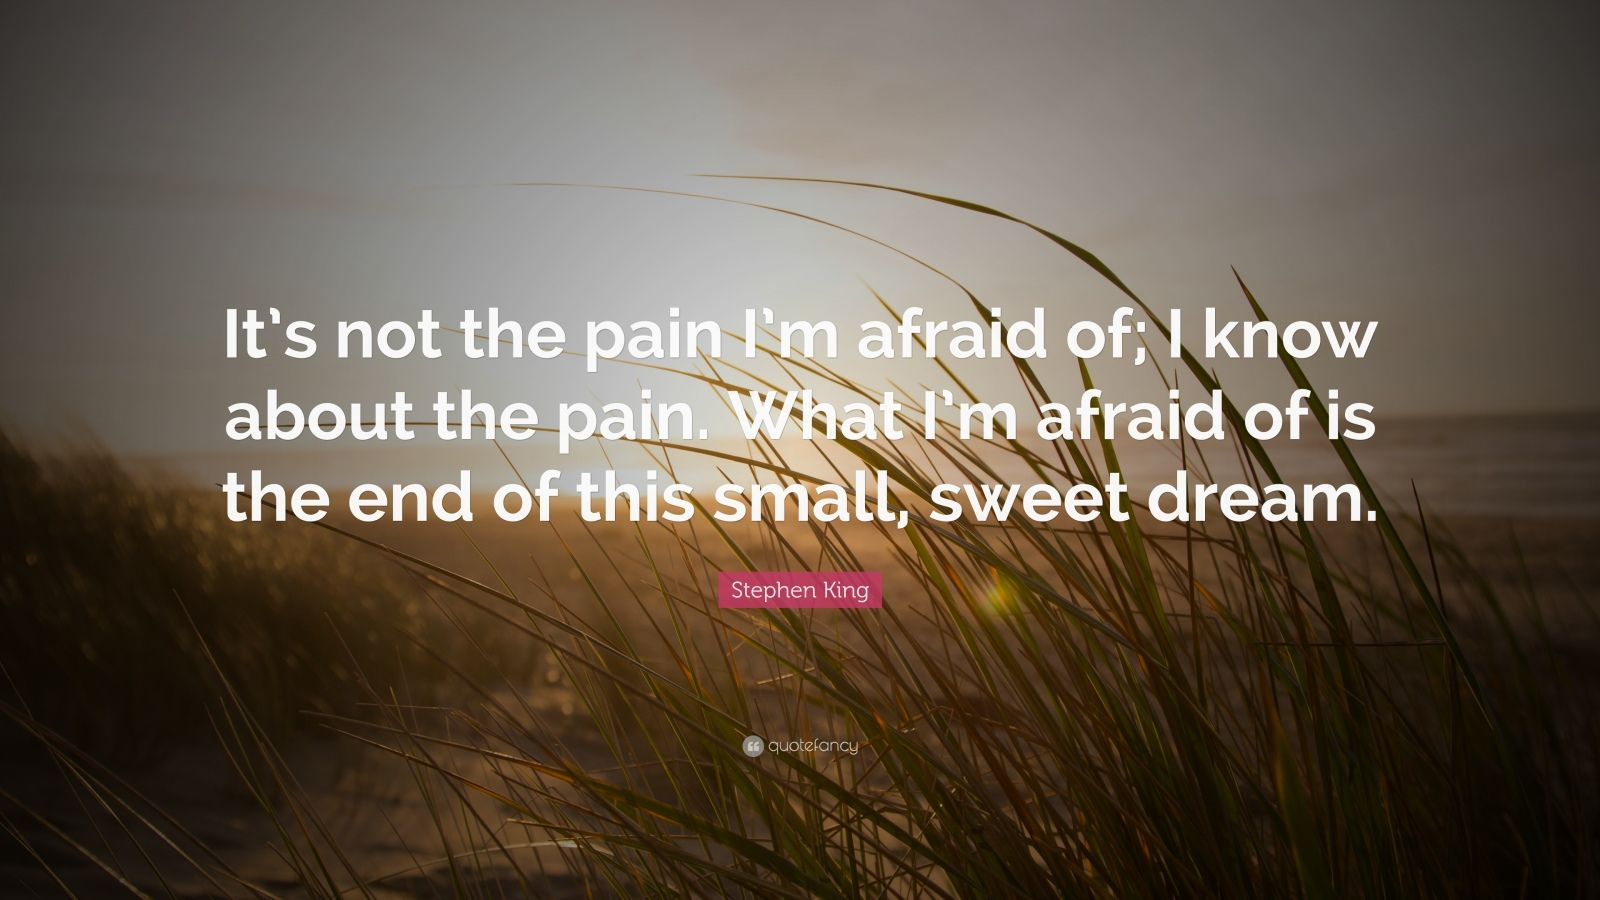 """Stephen King Quote: """"It's not the pain I'm afraid of; I know about the pain. What I'm afraid of is the end of this small, sweet dream."""""""